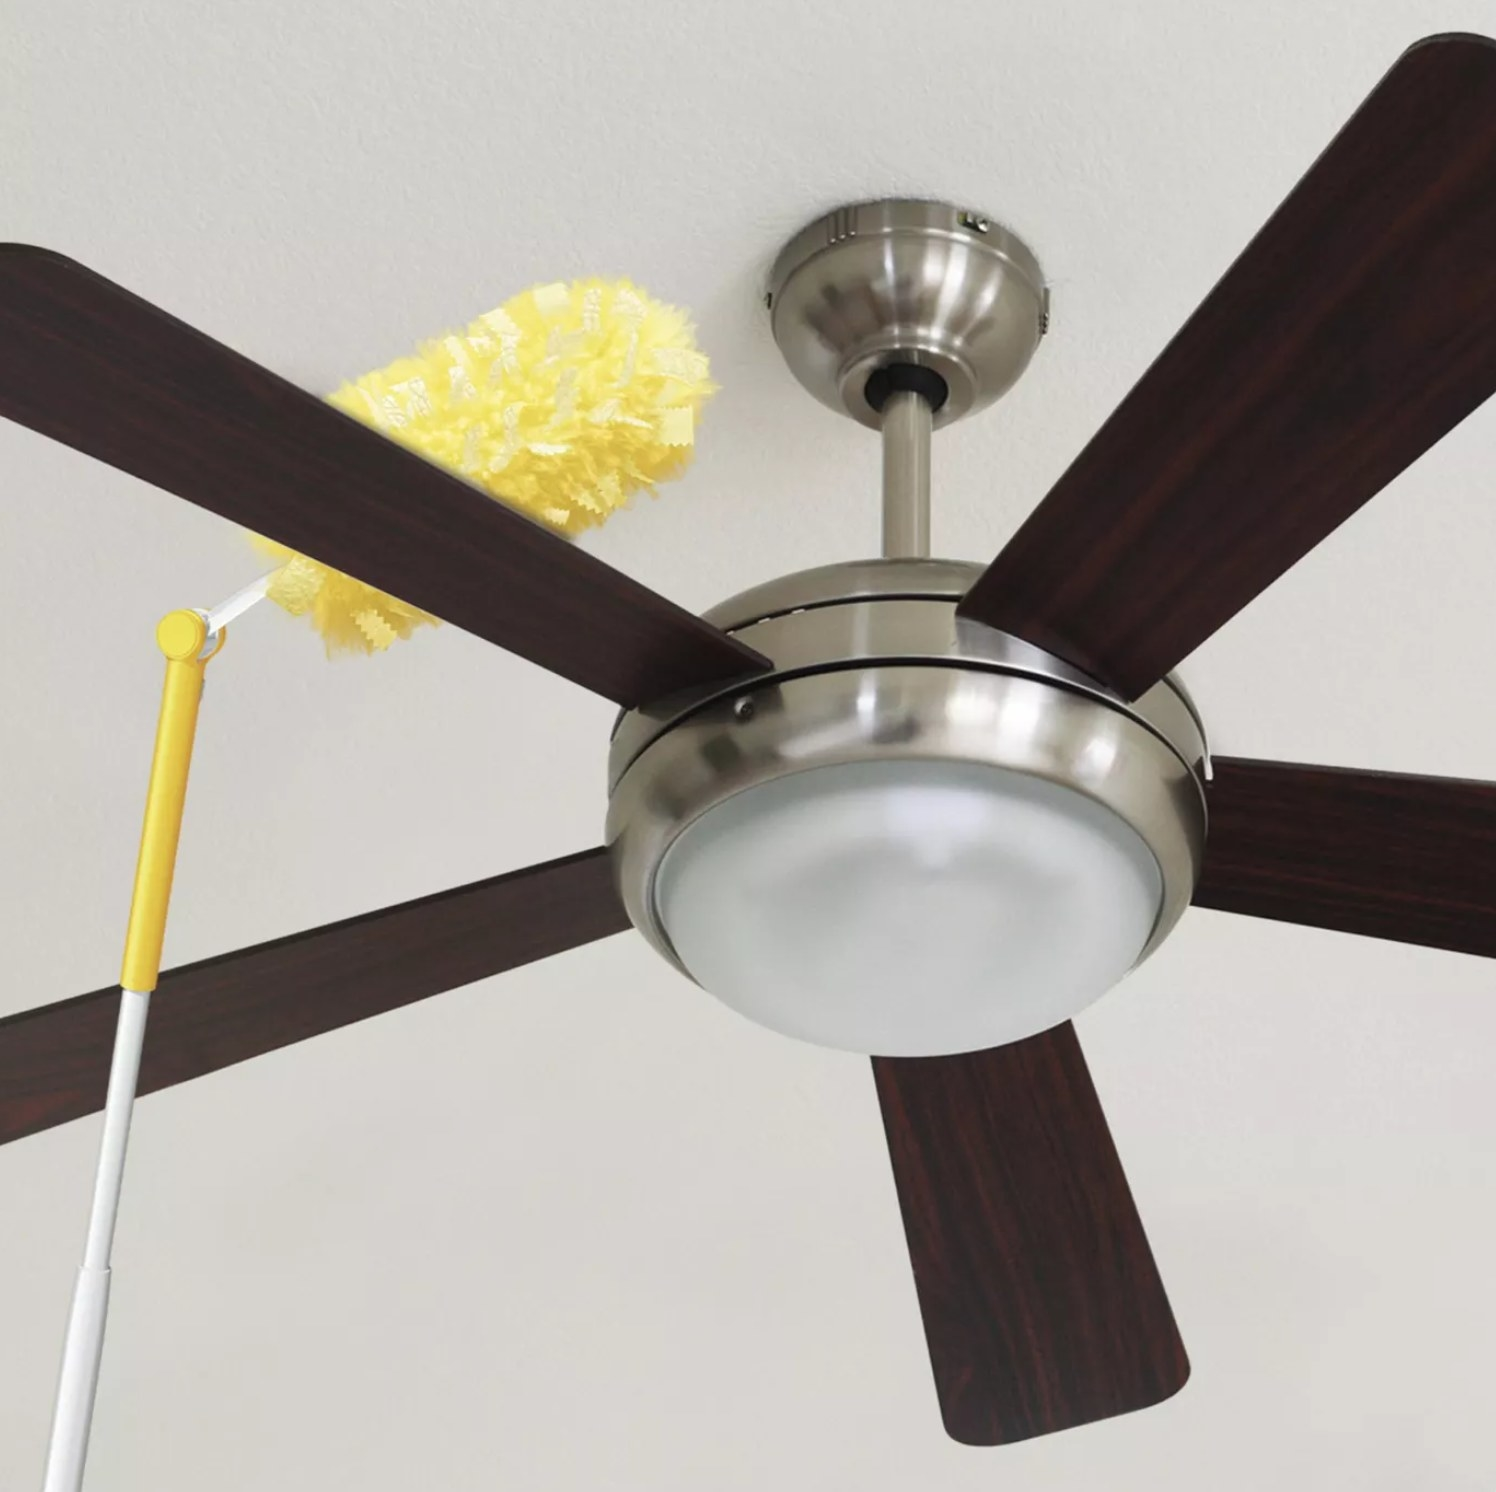 the duster dusting the top of a ceiling fan